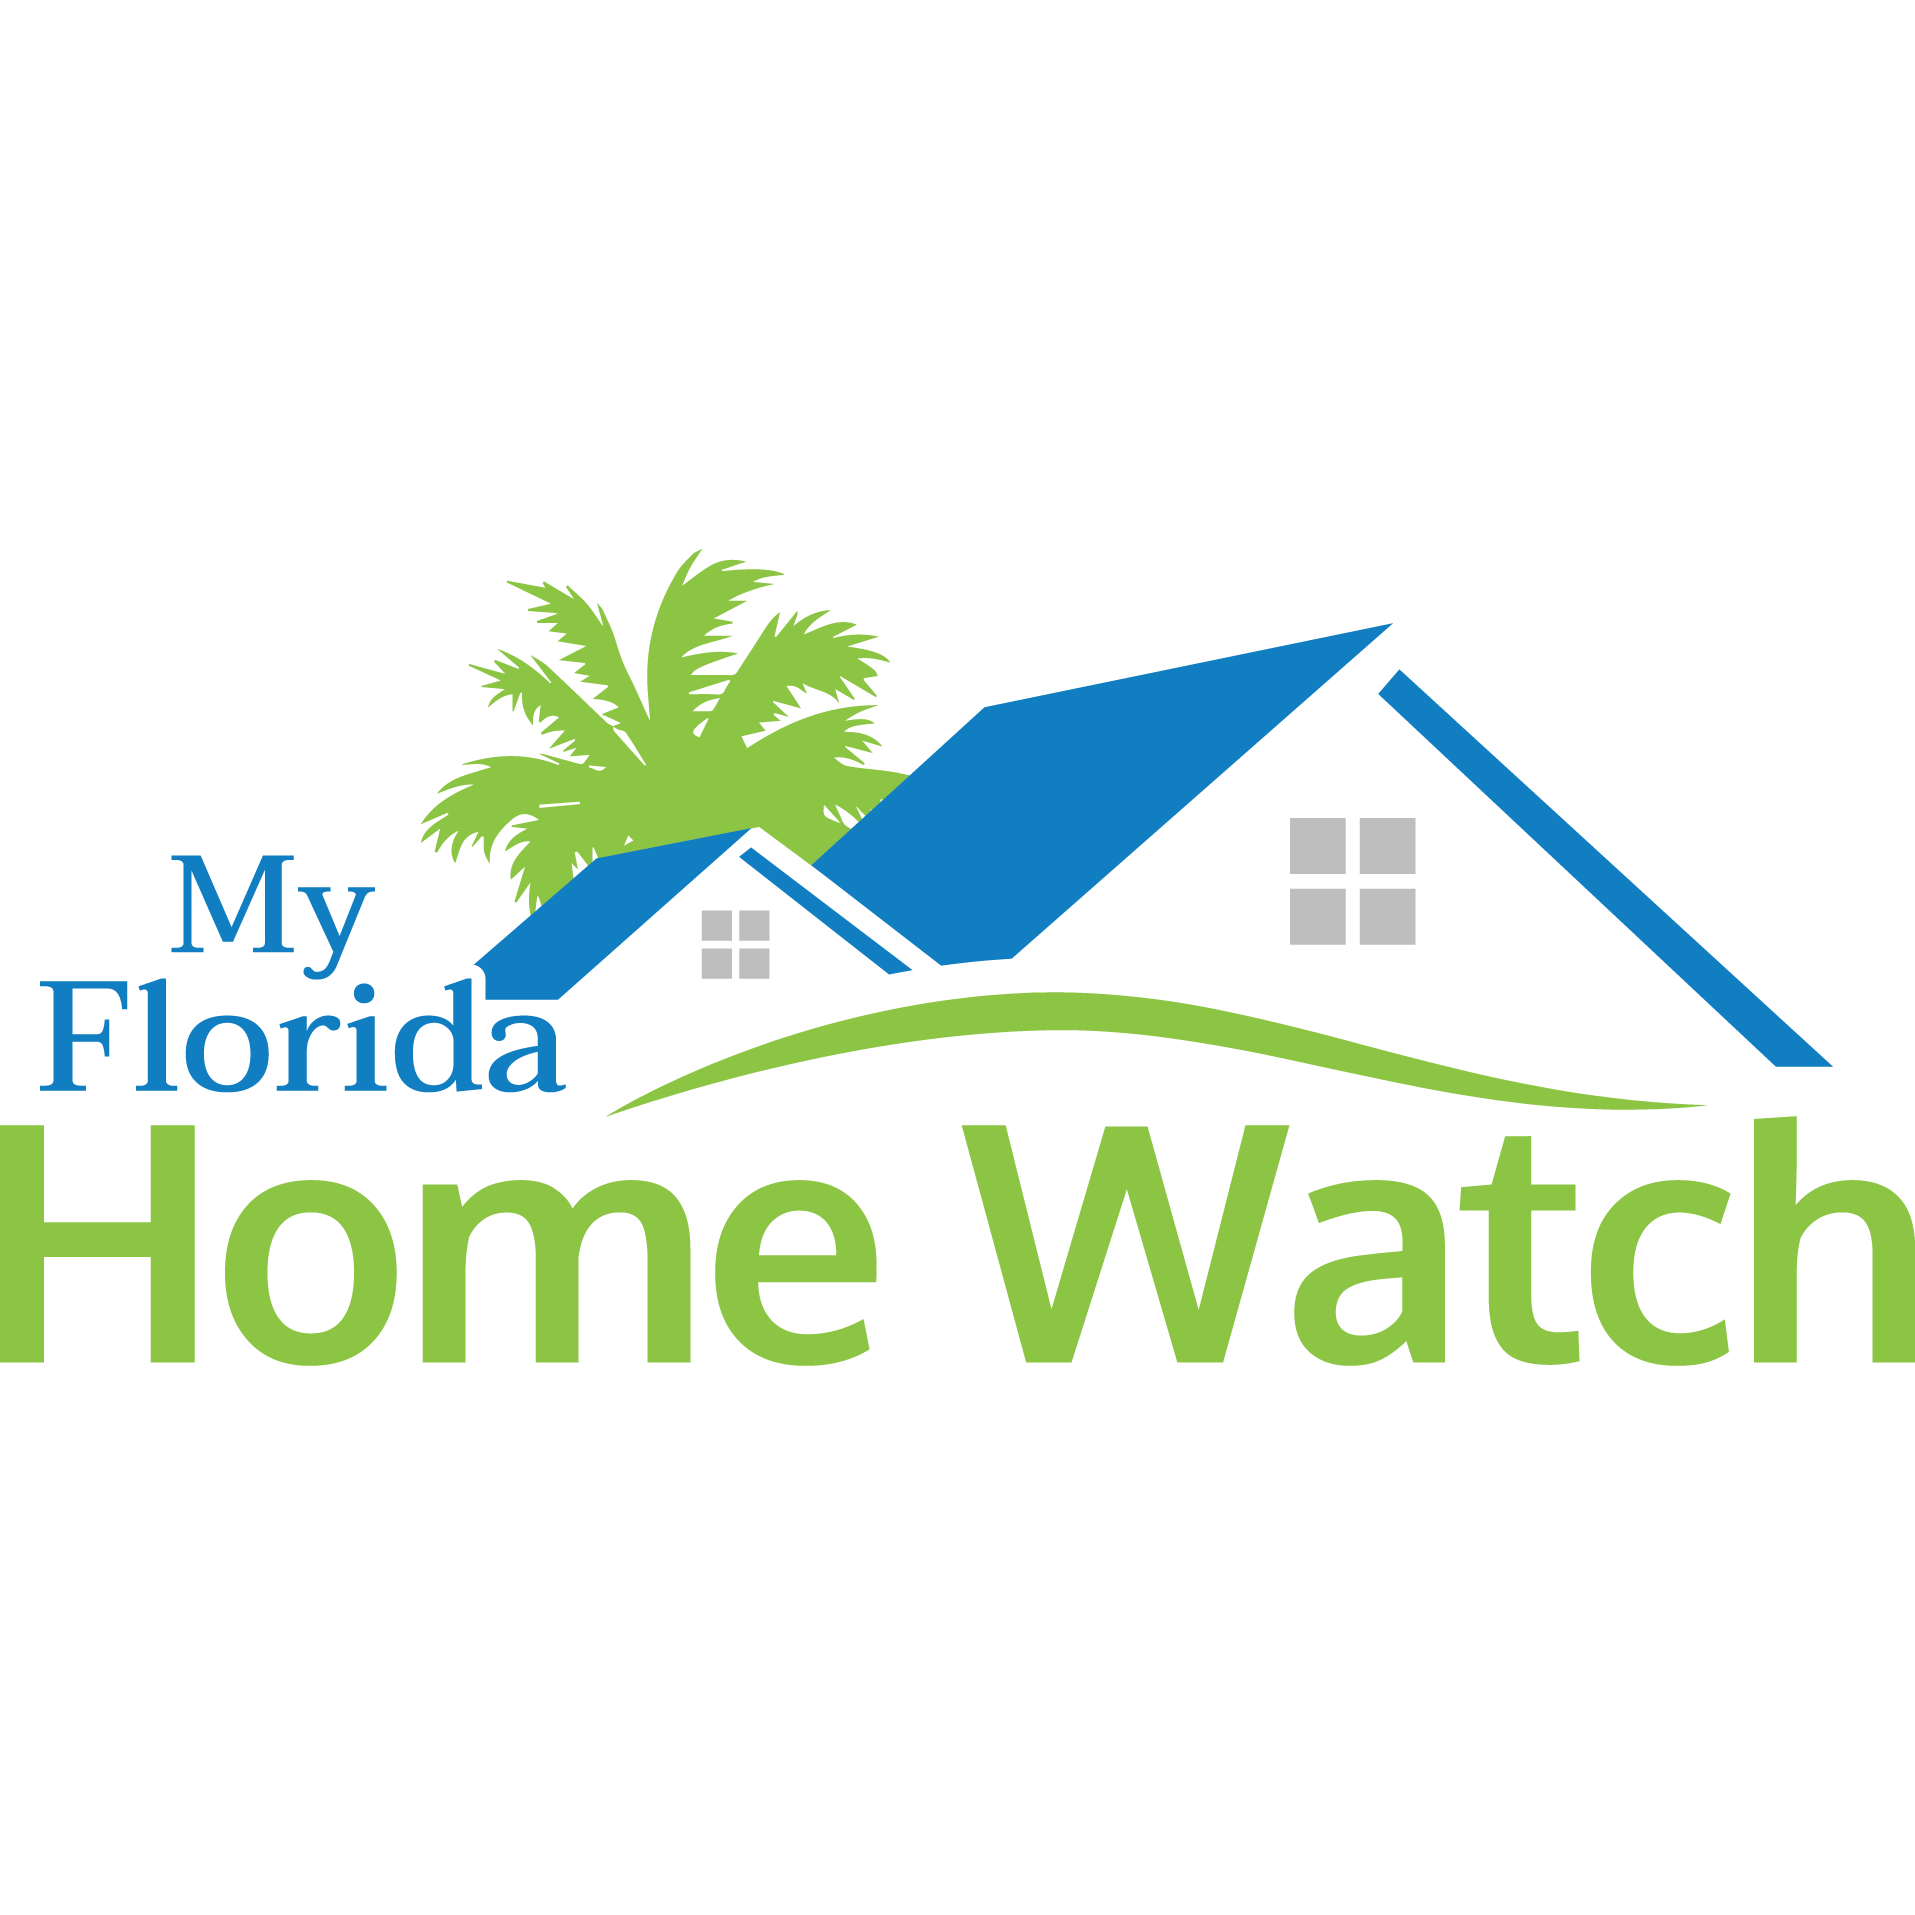 My Florida Home Watch